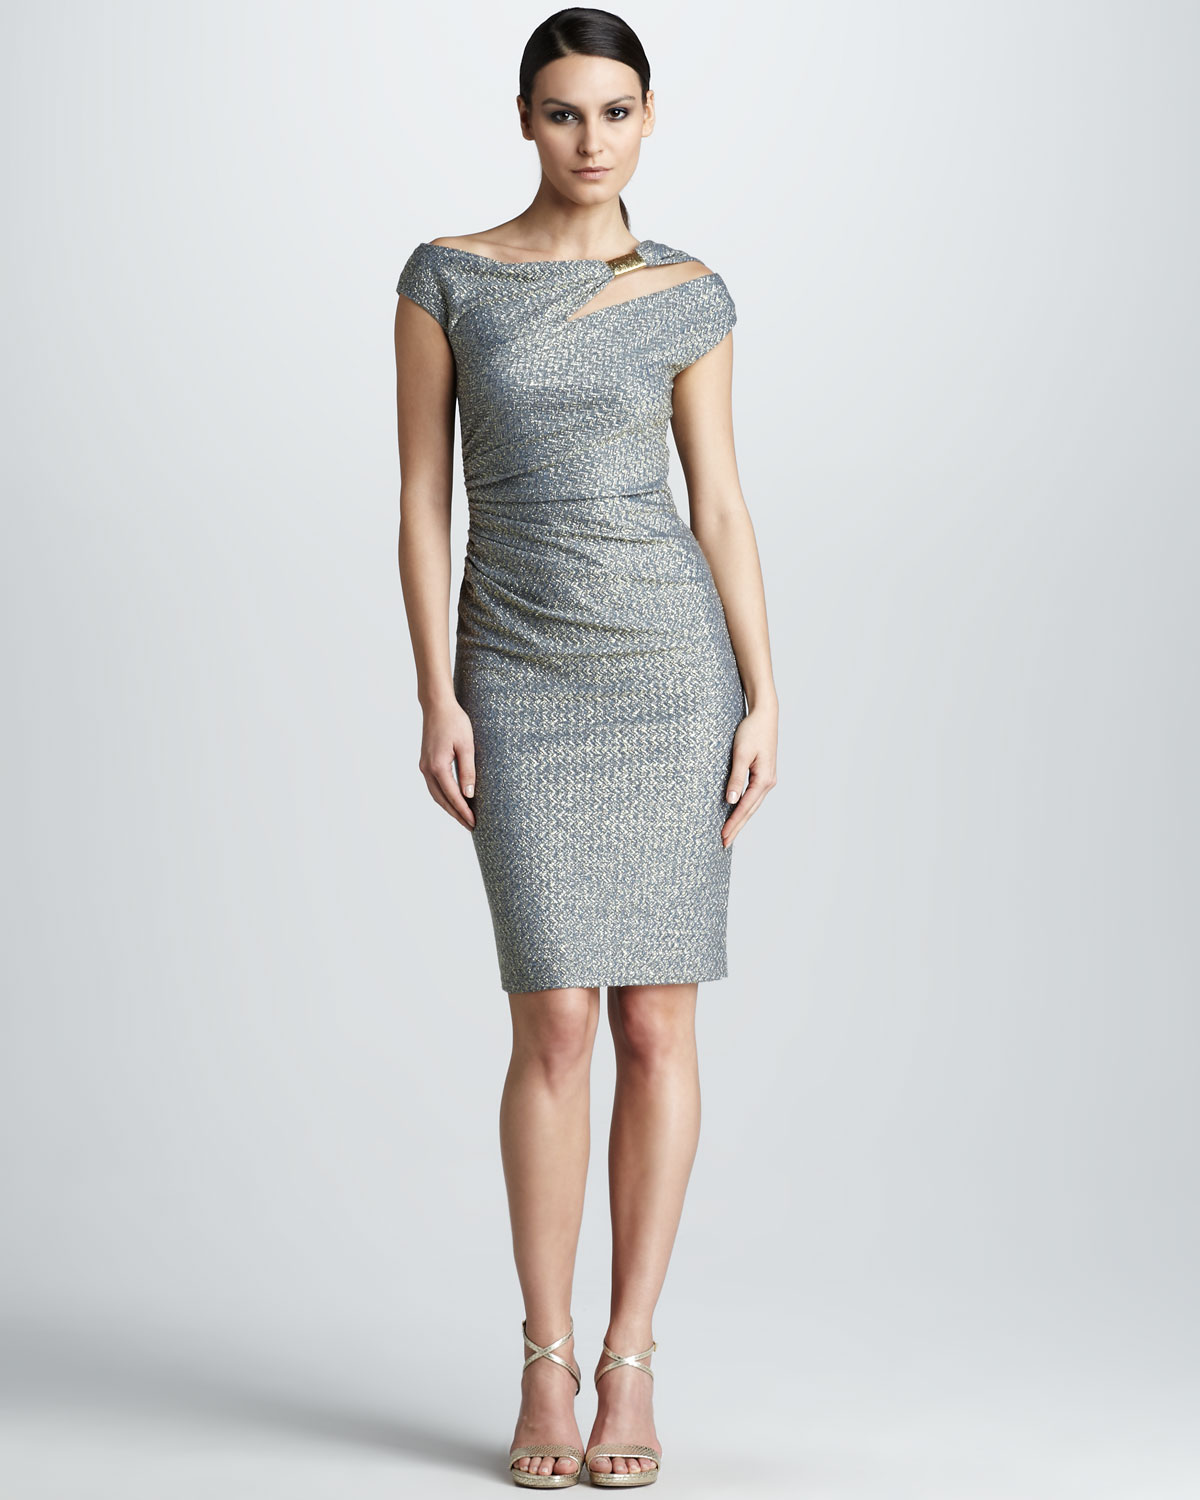 David meister Asymmetric Cocktail Dress in Blue  Lyst